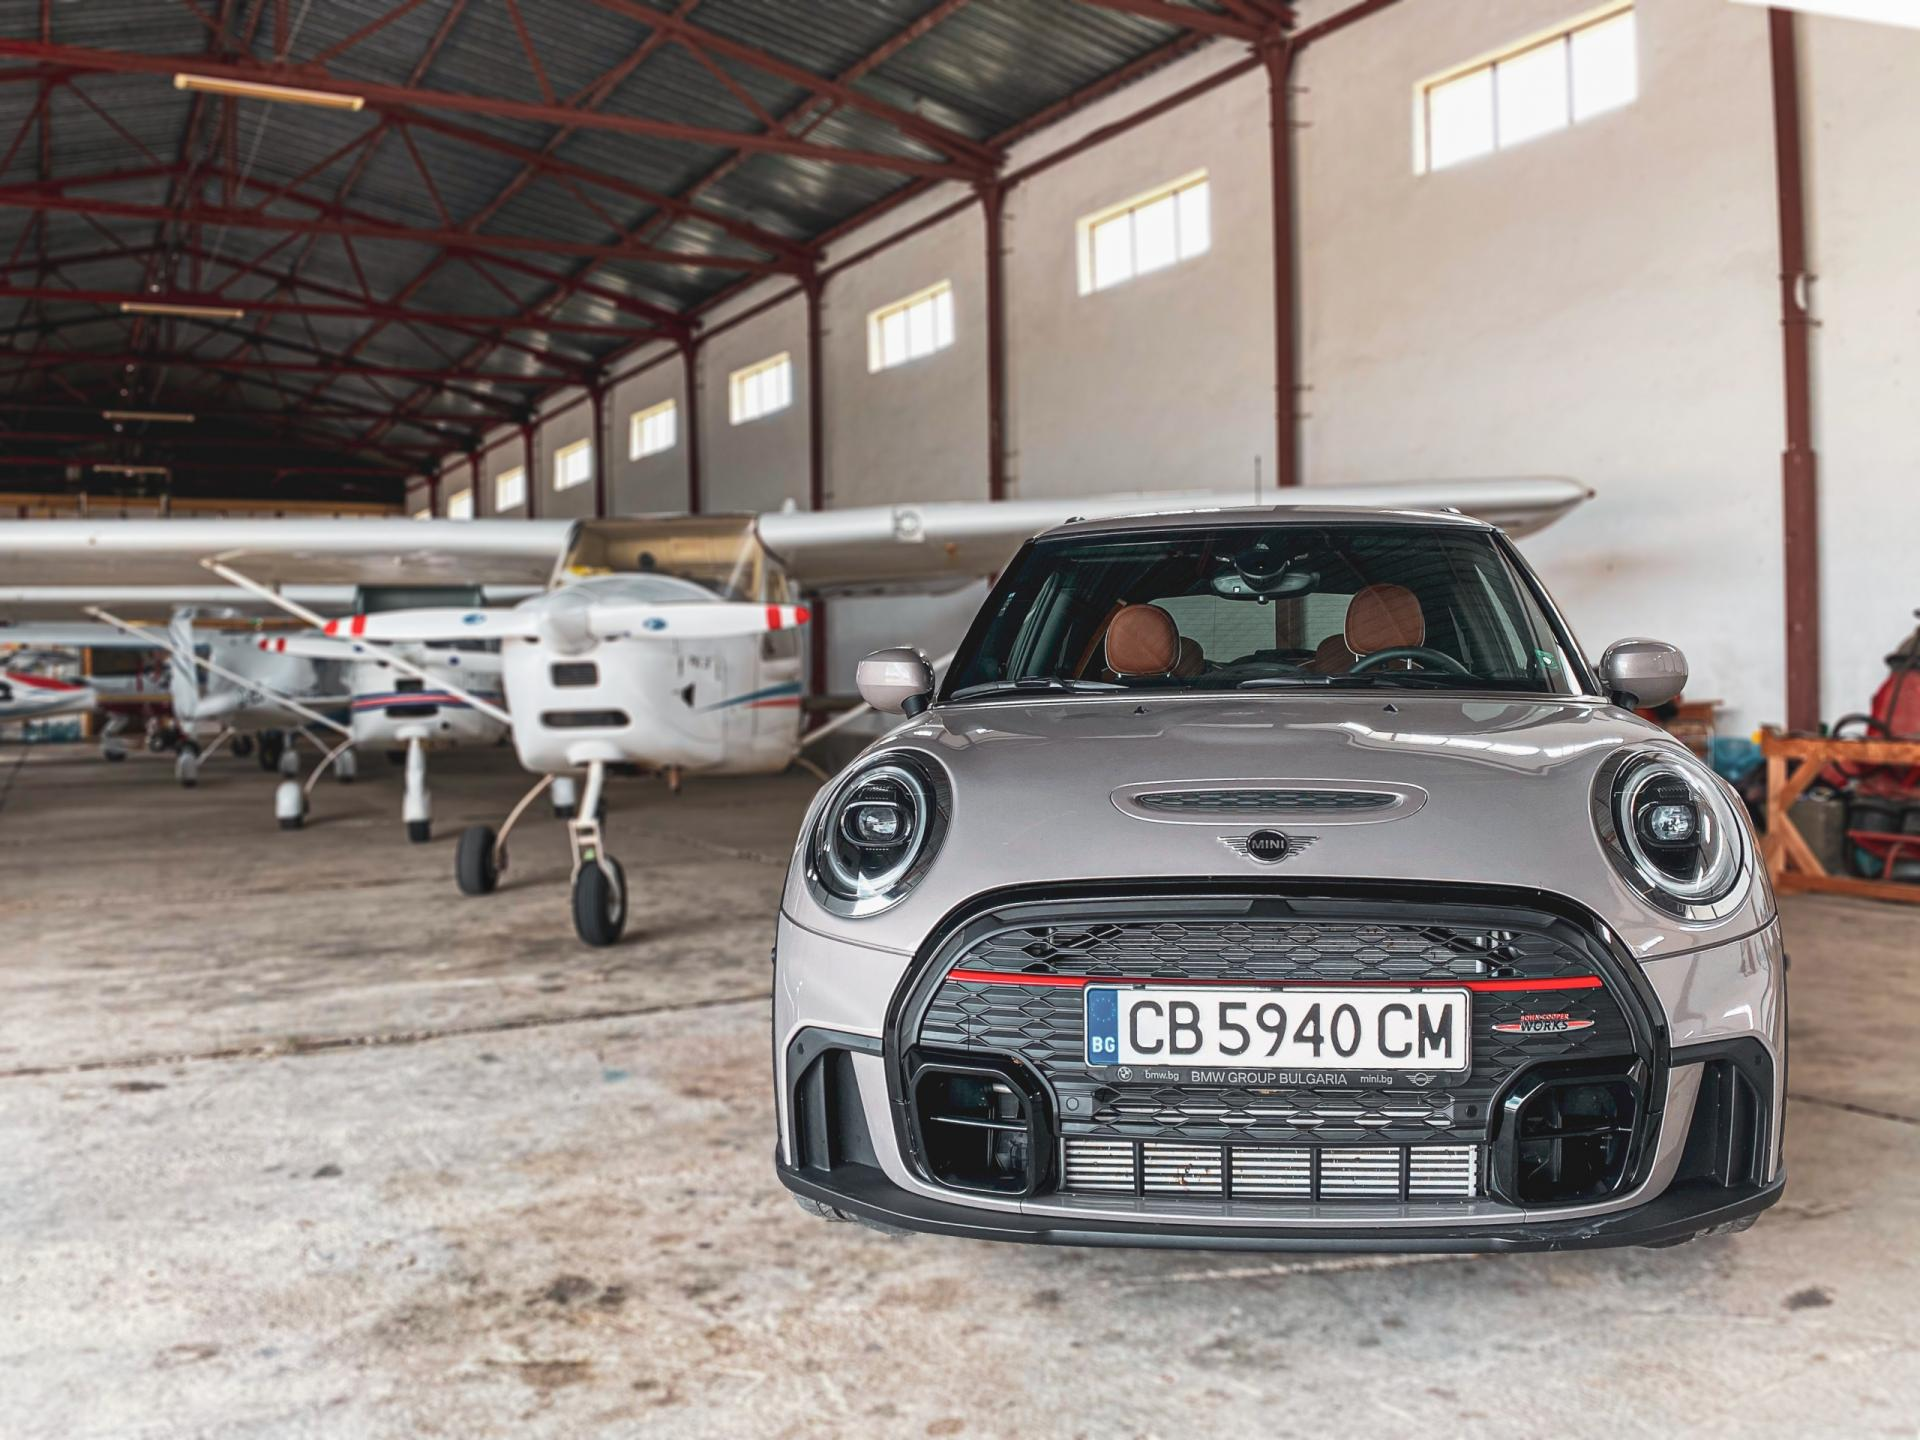 MINI JCW LCI in a Plane Hangar surrounded by small planes